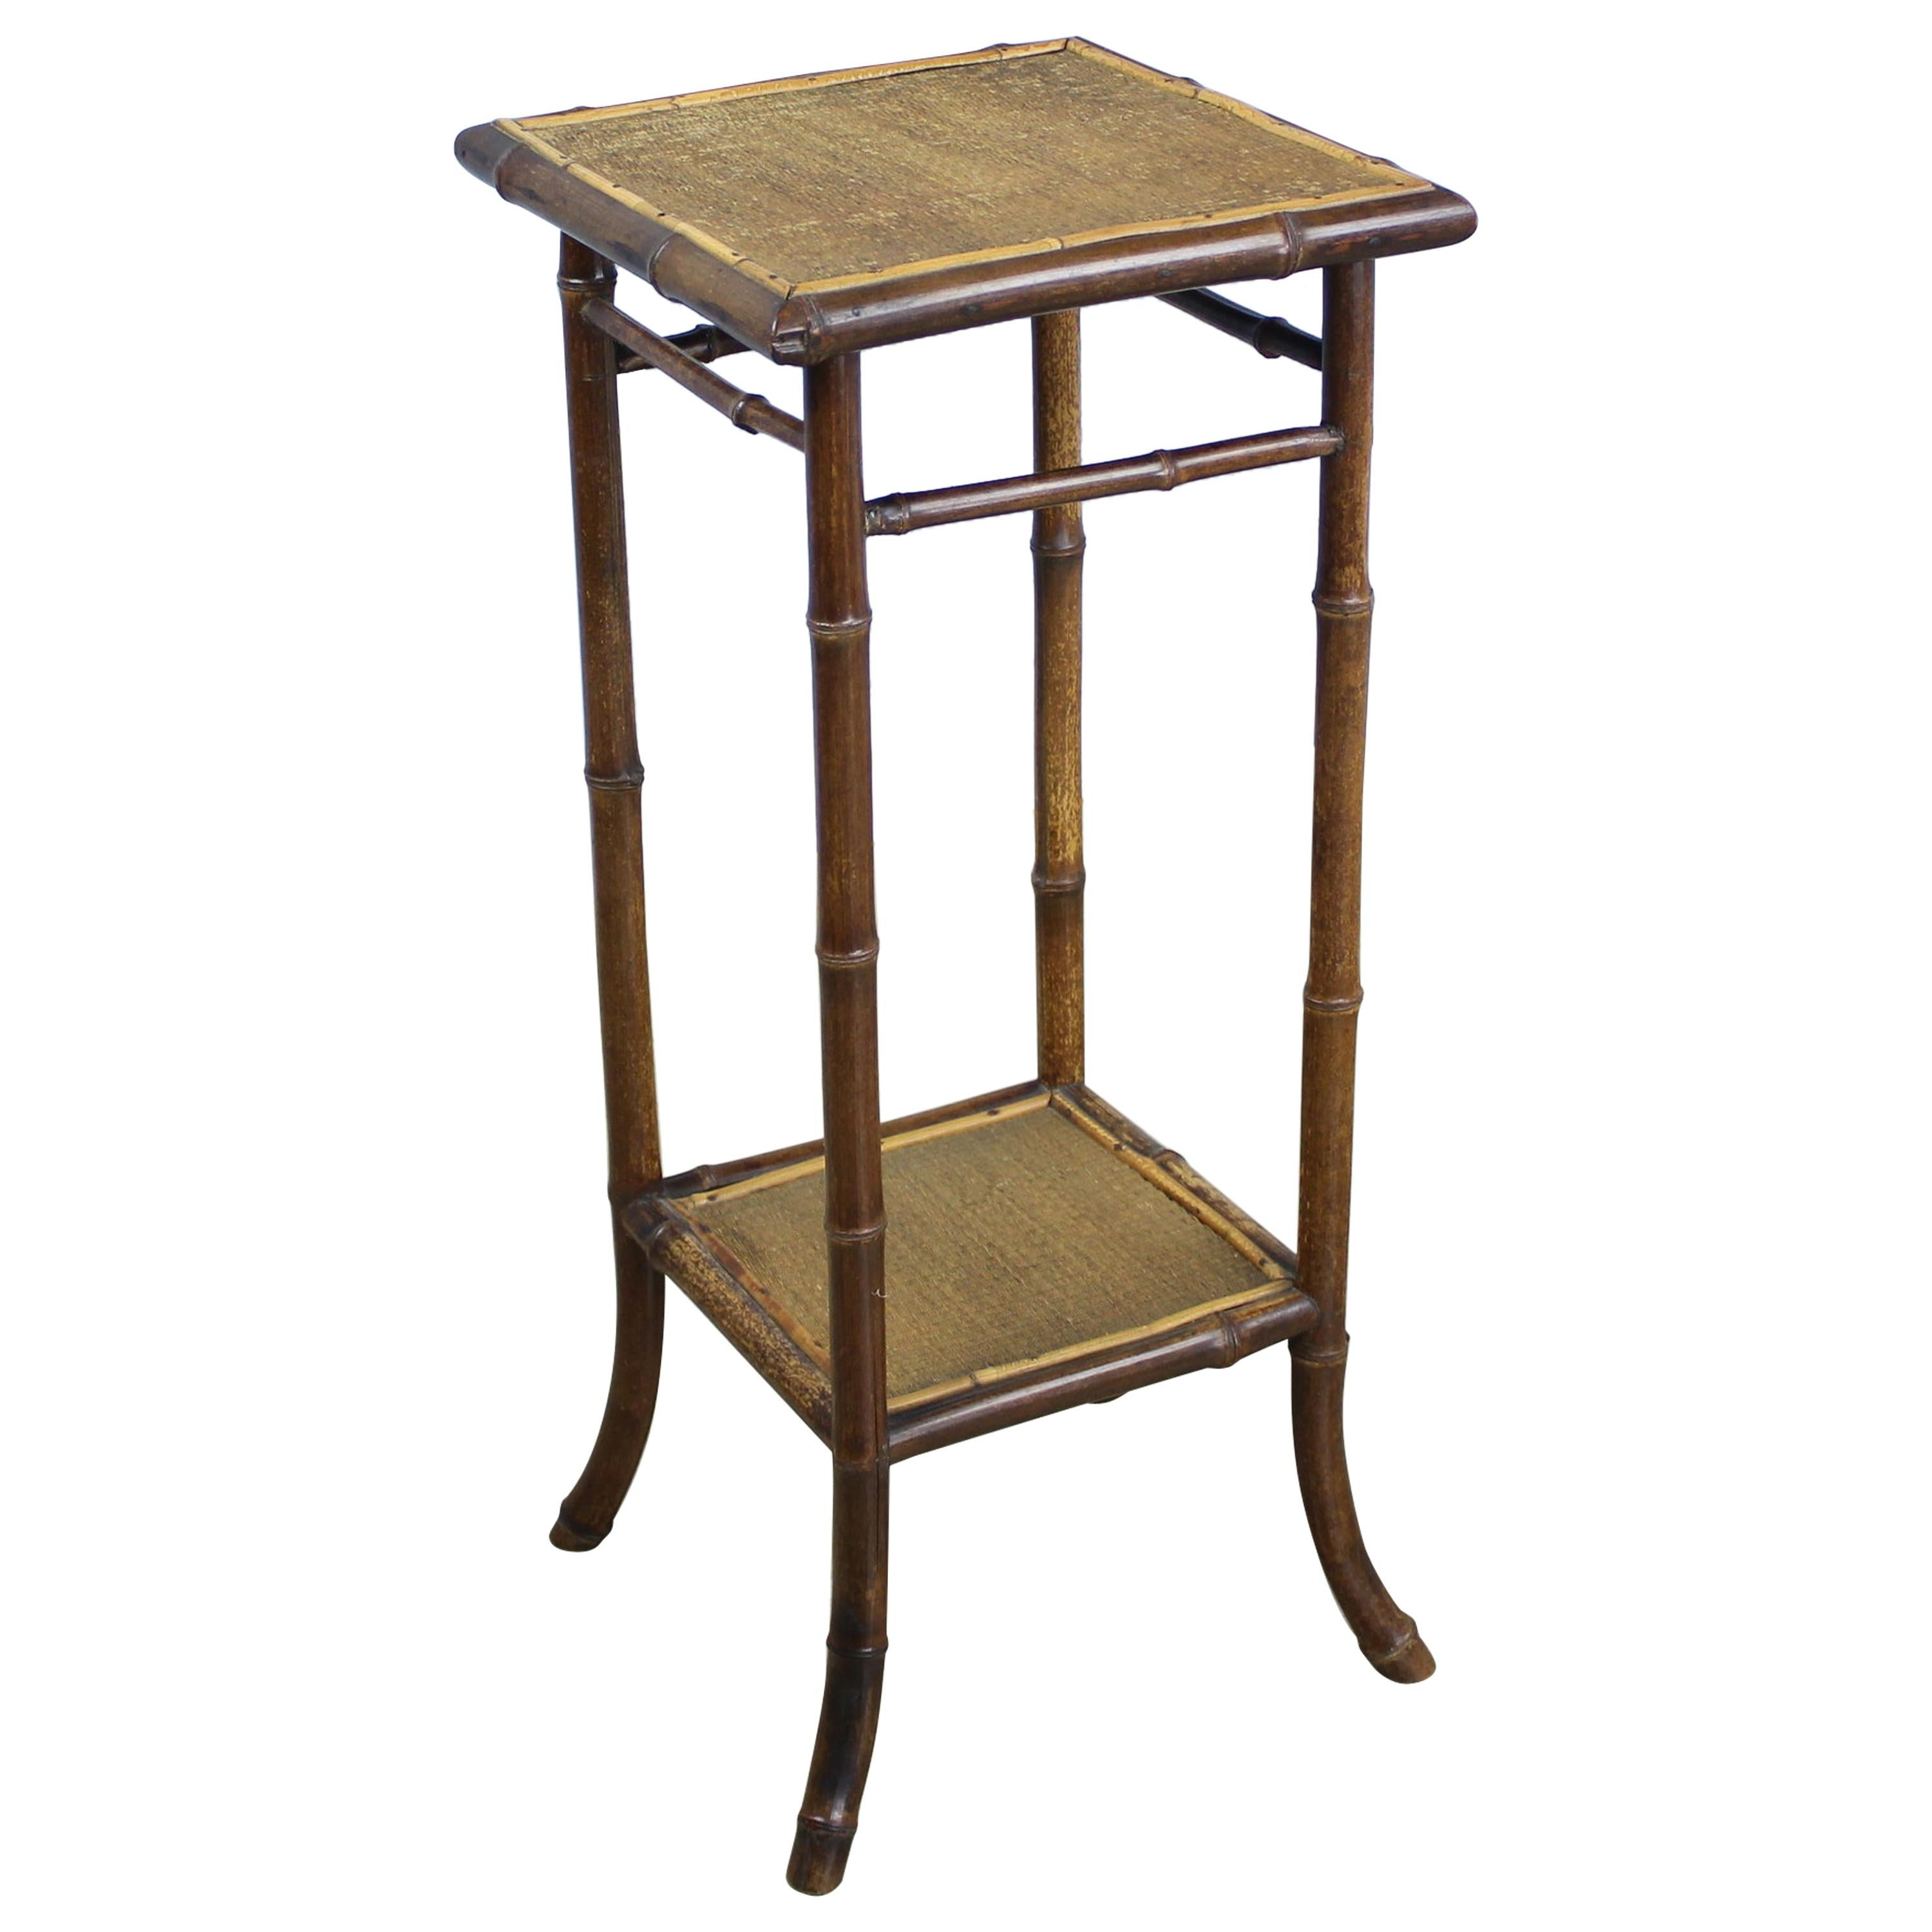 Phenomenal Small Antique English Bamboo Side Table Home Interior And Landscaping Ologienasavecom